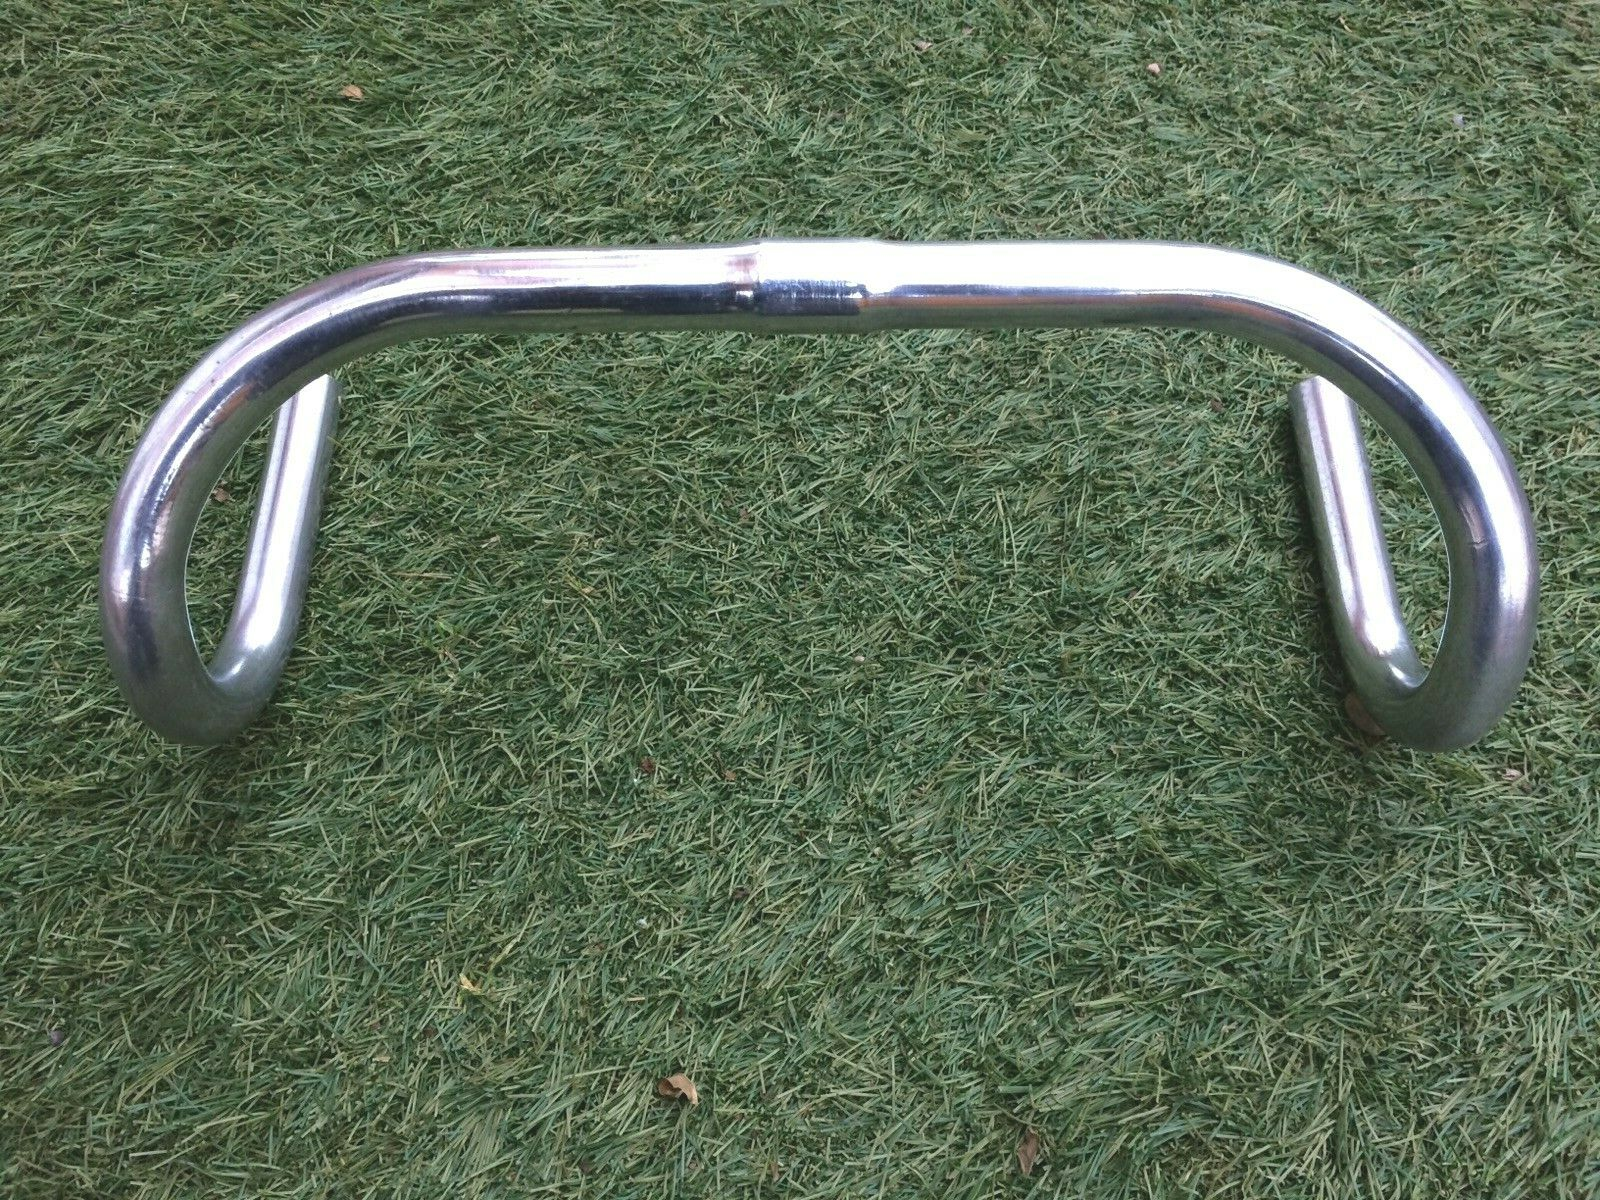 VINTAGE 1950's STRATALITE MAES ALLOY HANDLEBARS,38CM WIDE,IN EXC COND.L'EROICA